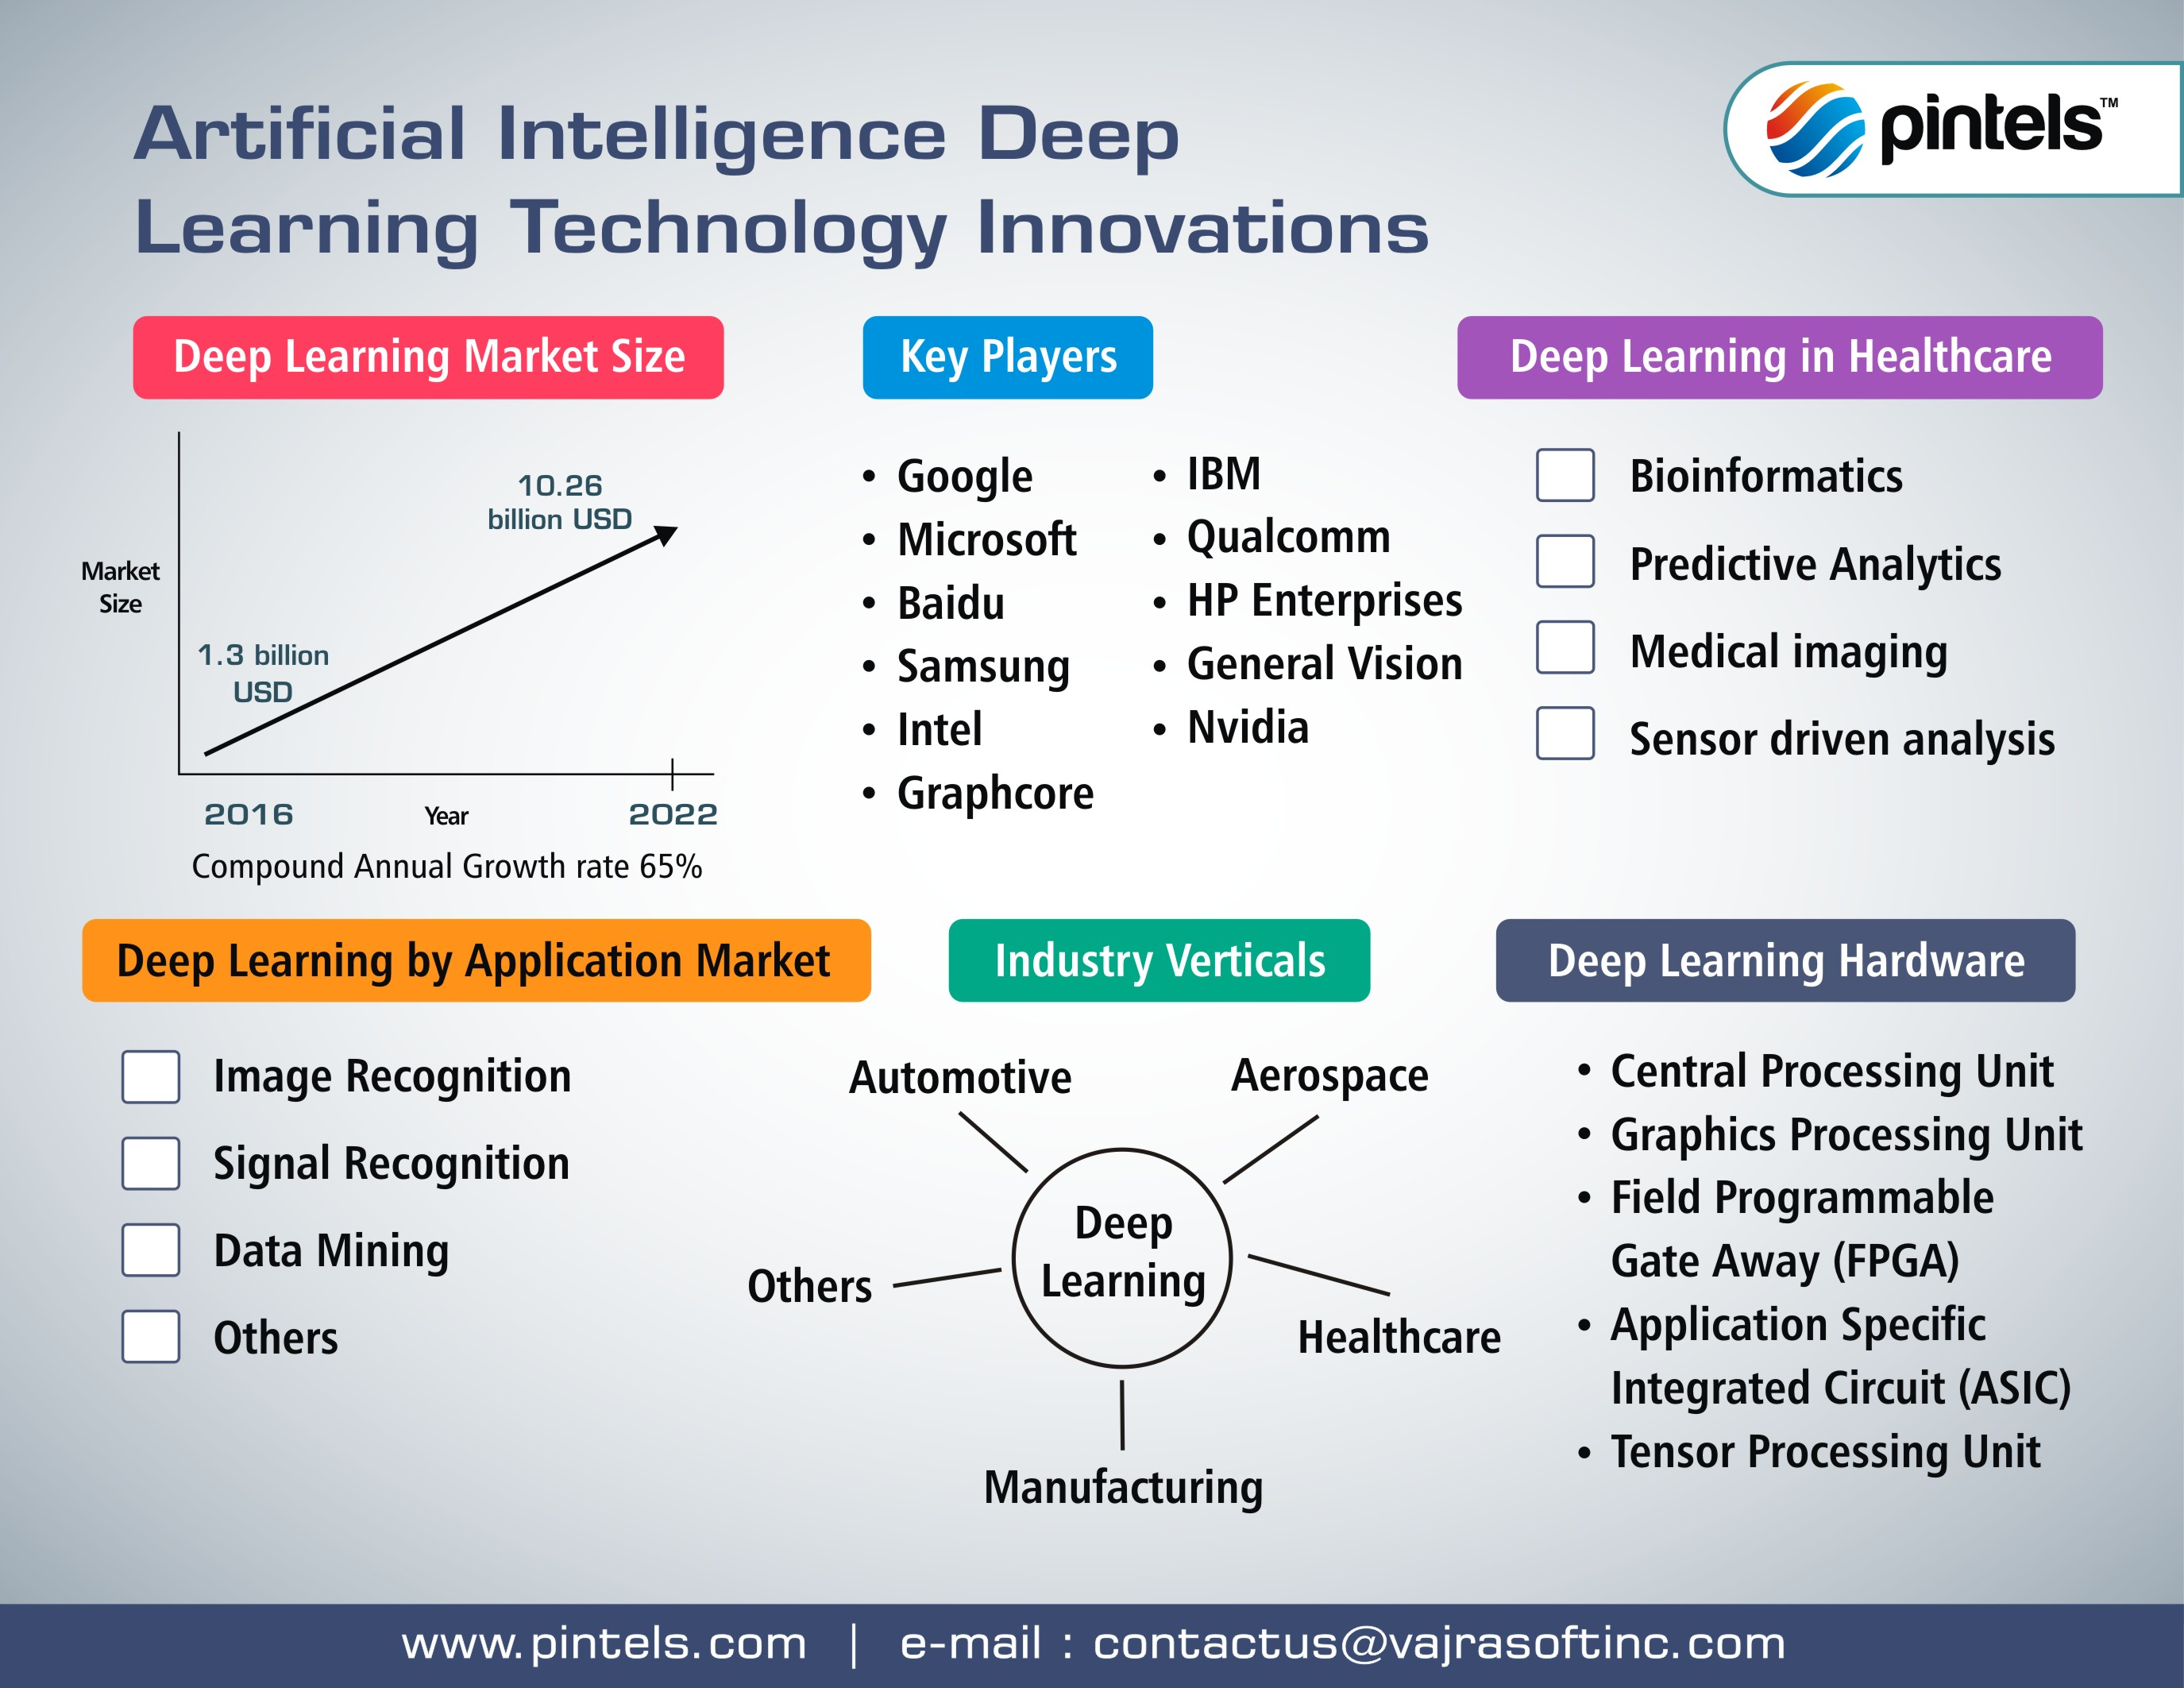 Pintels for Deep Learning Tecnology Innovations